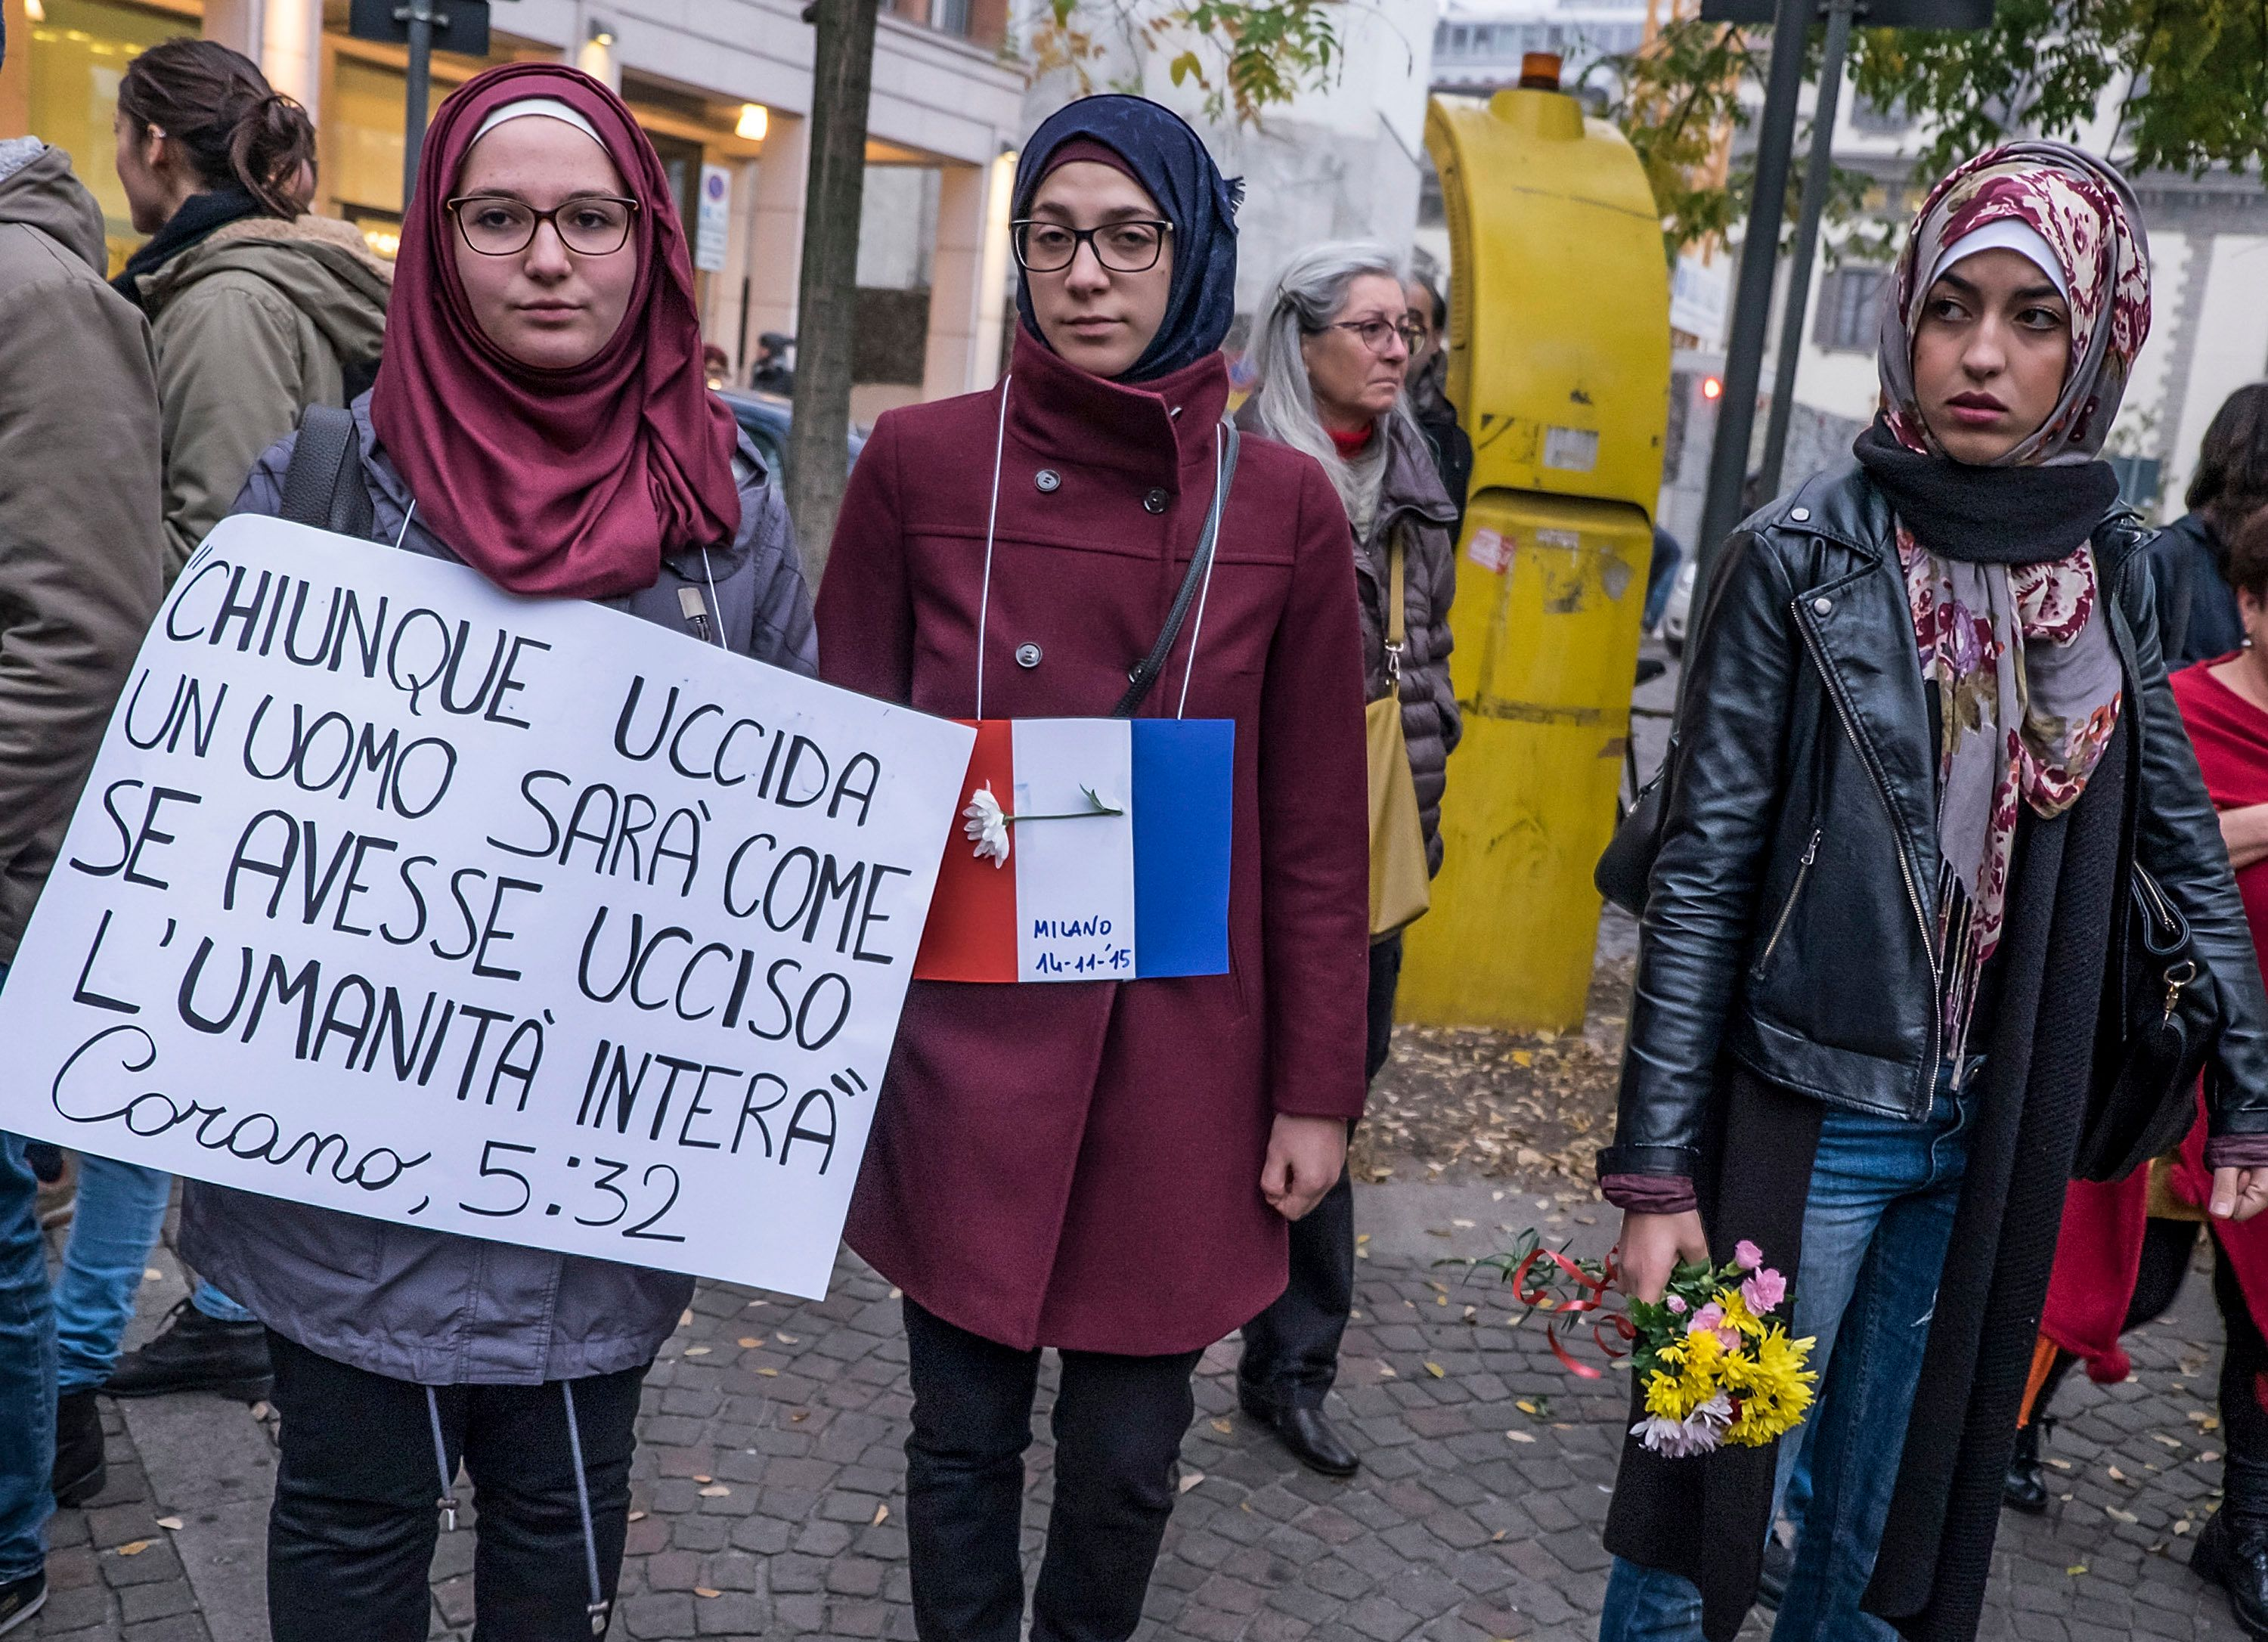 A youngwoman holds a sign with a versefrom the Quran at a service for victims of the Paris attacks held in Milan,